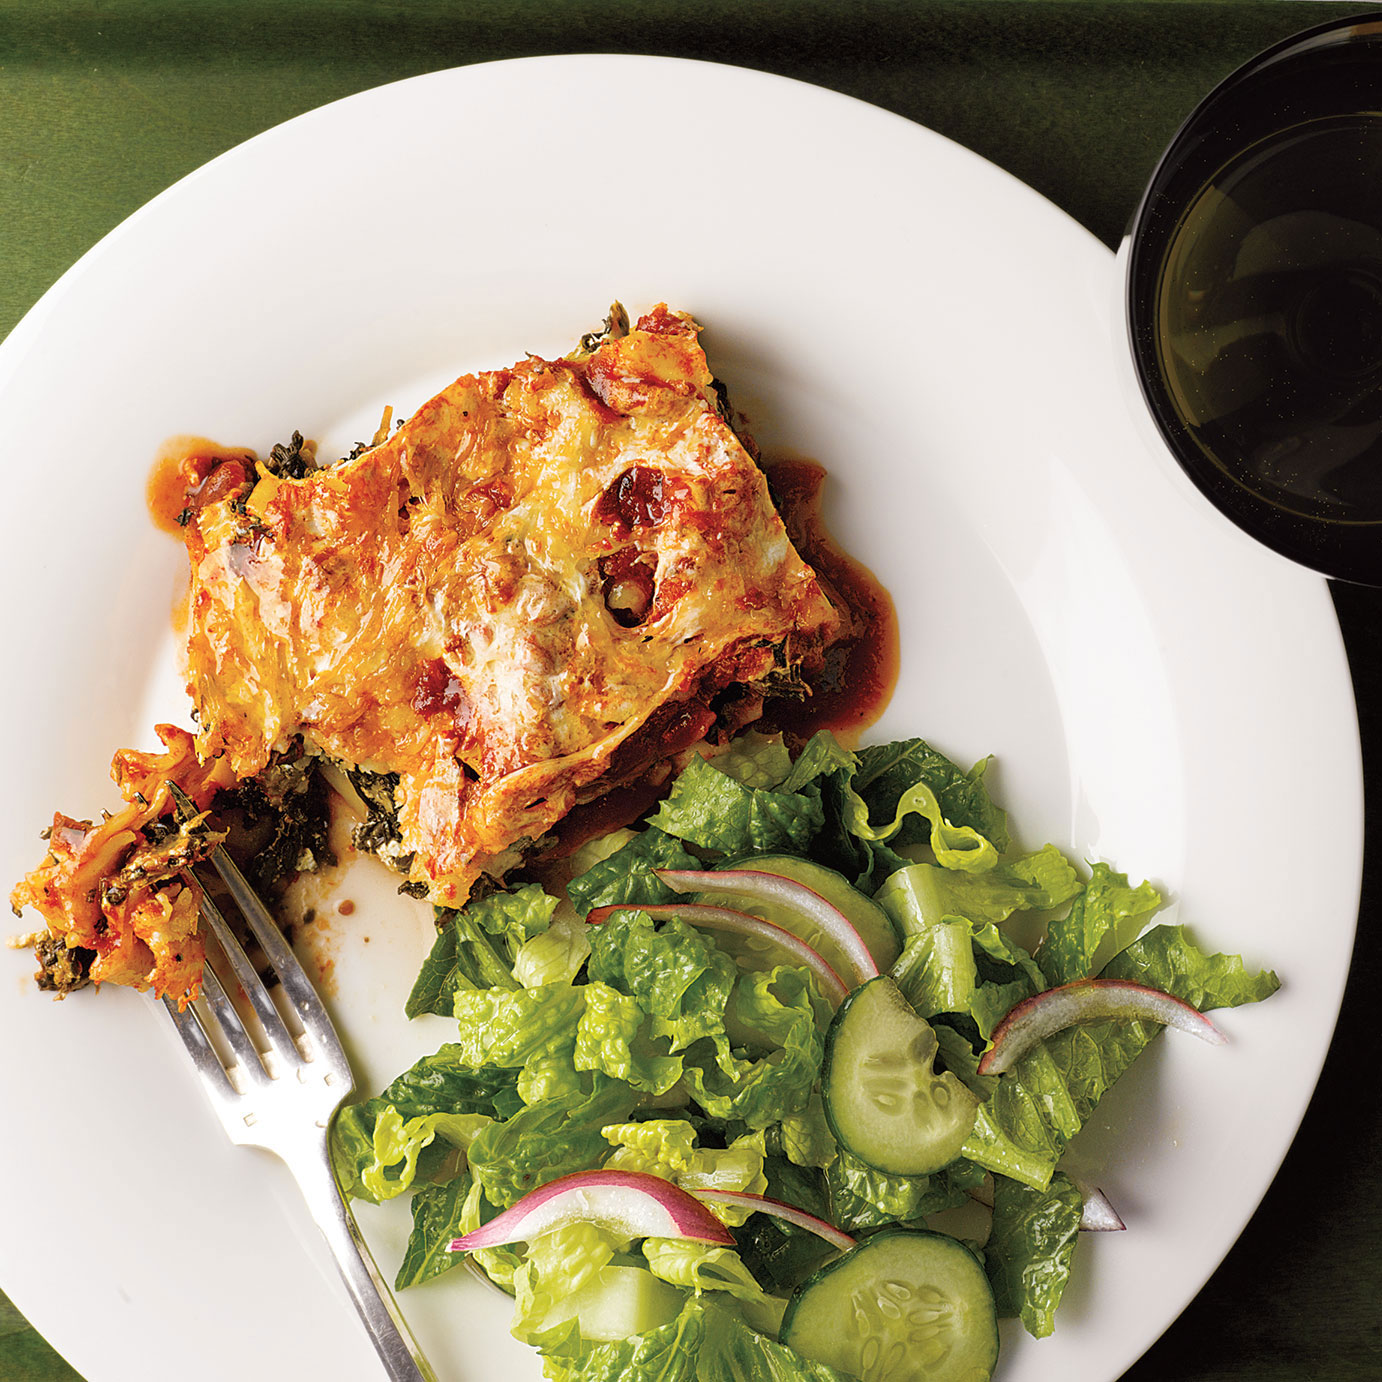 Easy pasta recipes - Slow-Cooker Spinach and Ricotta Lasagna With Romaine Salad